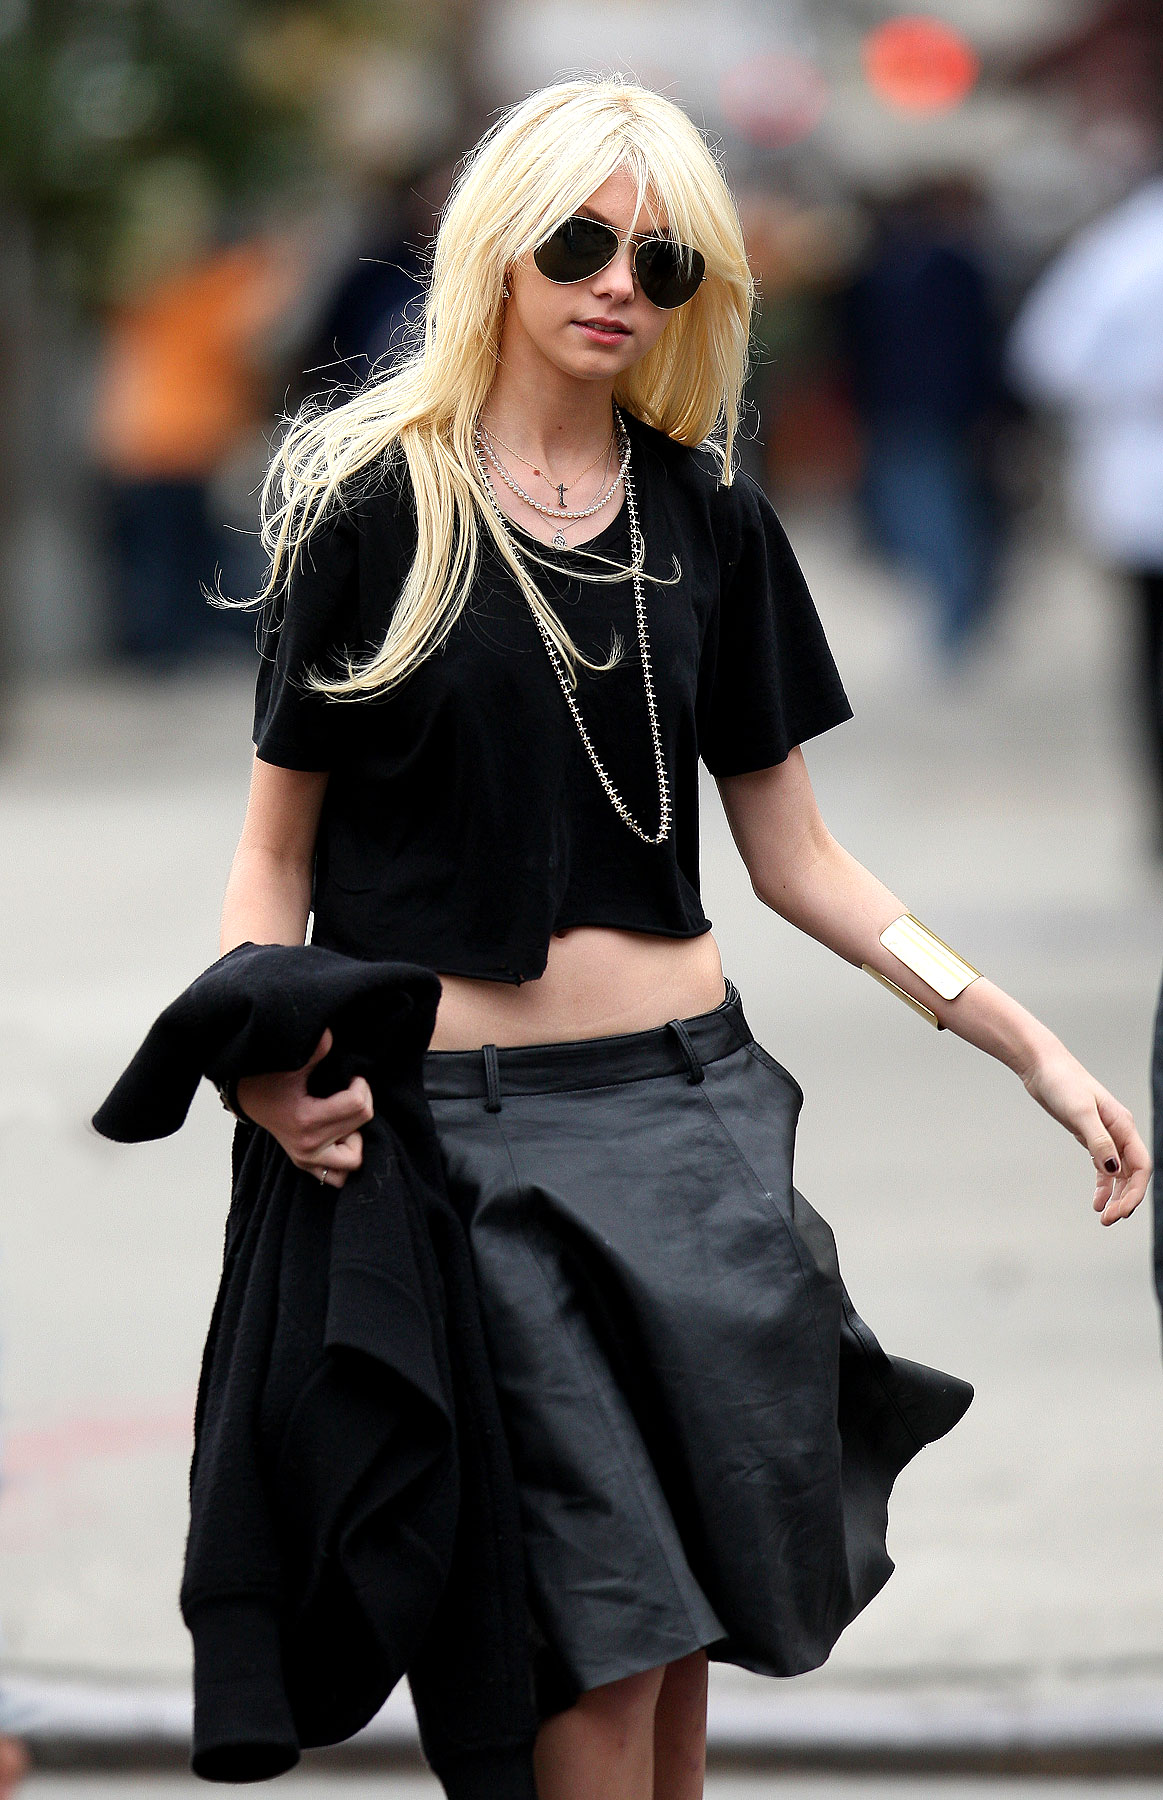 PHOTO GALLERY: Taylor Momsen Bares Belly